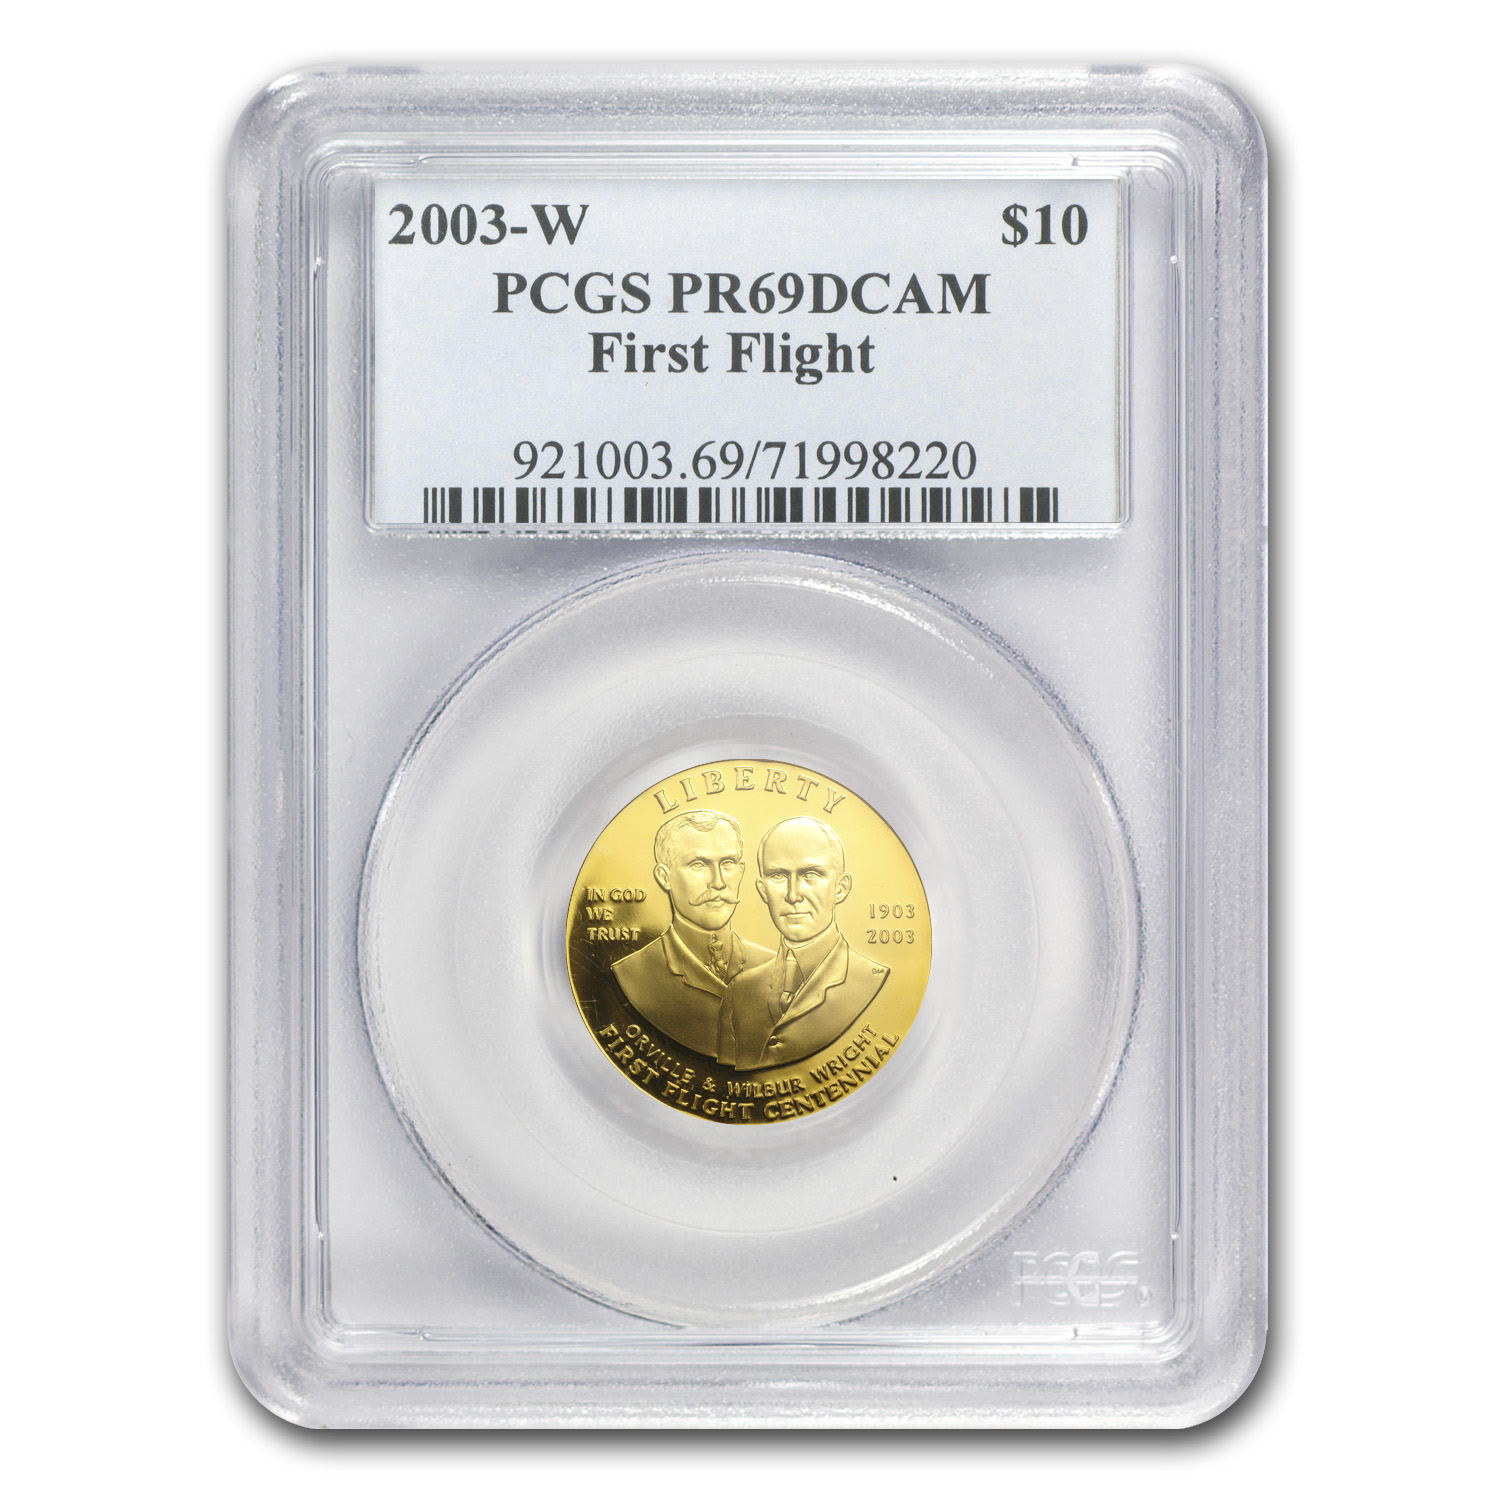 2003-W Gold $10 Commem First Flight Centennial PR-69 PCGS